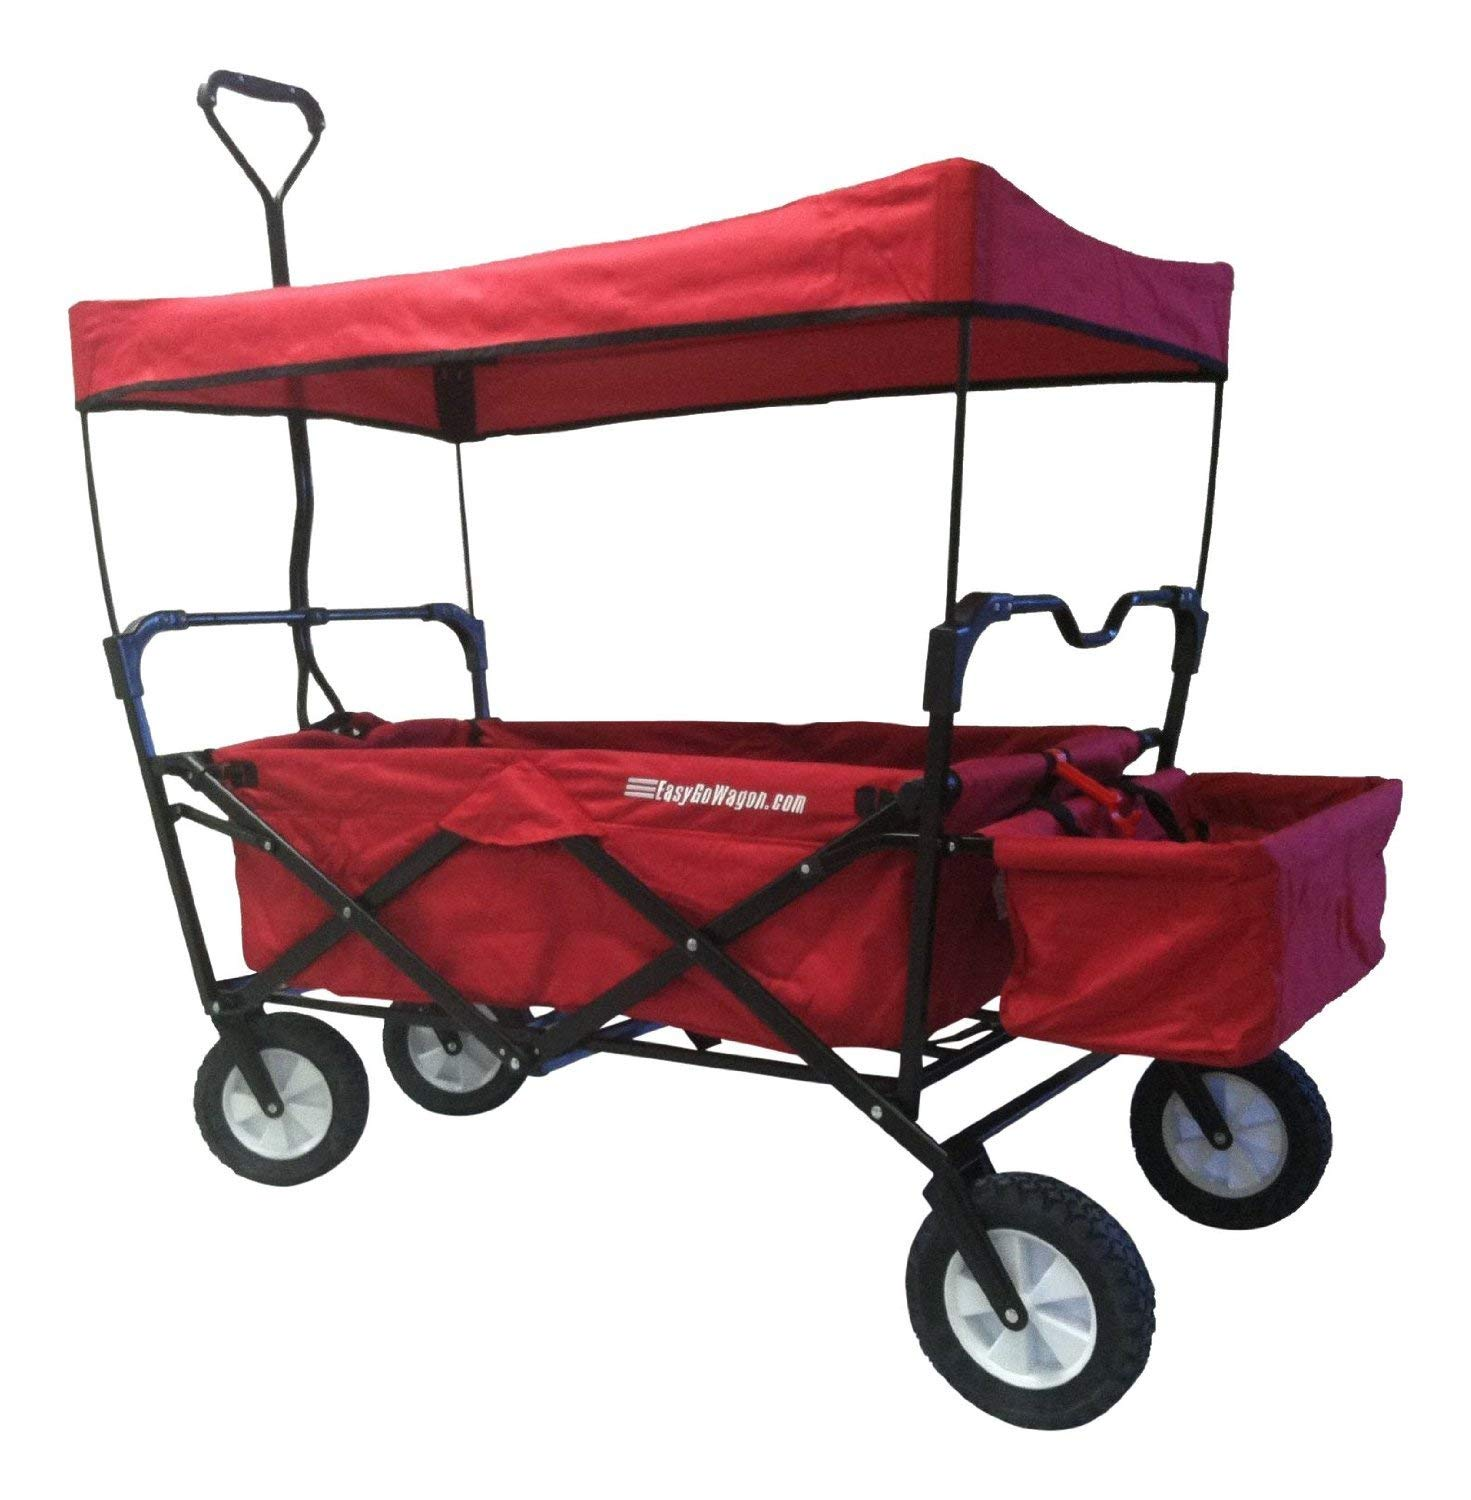 EasyGo Wagon Folding